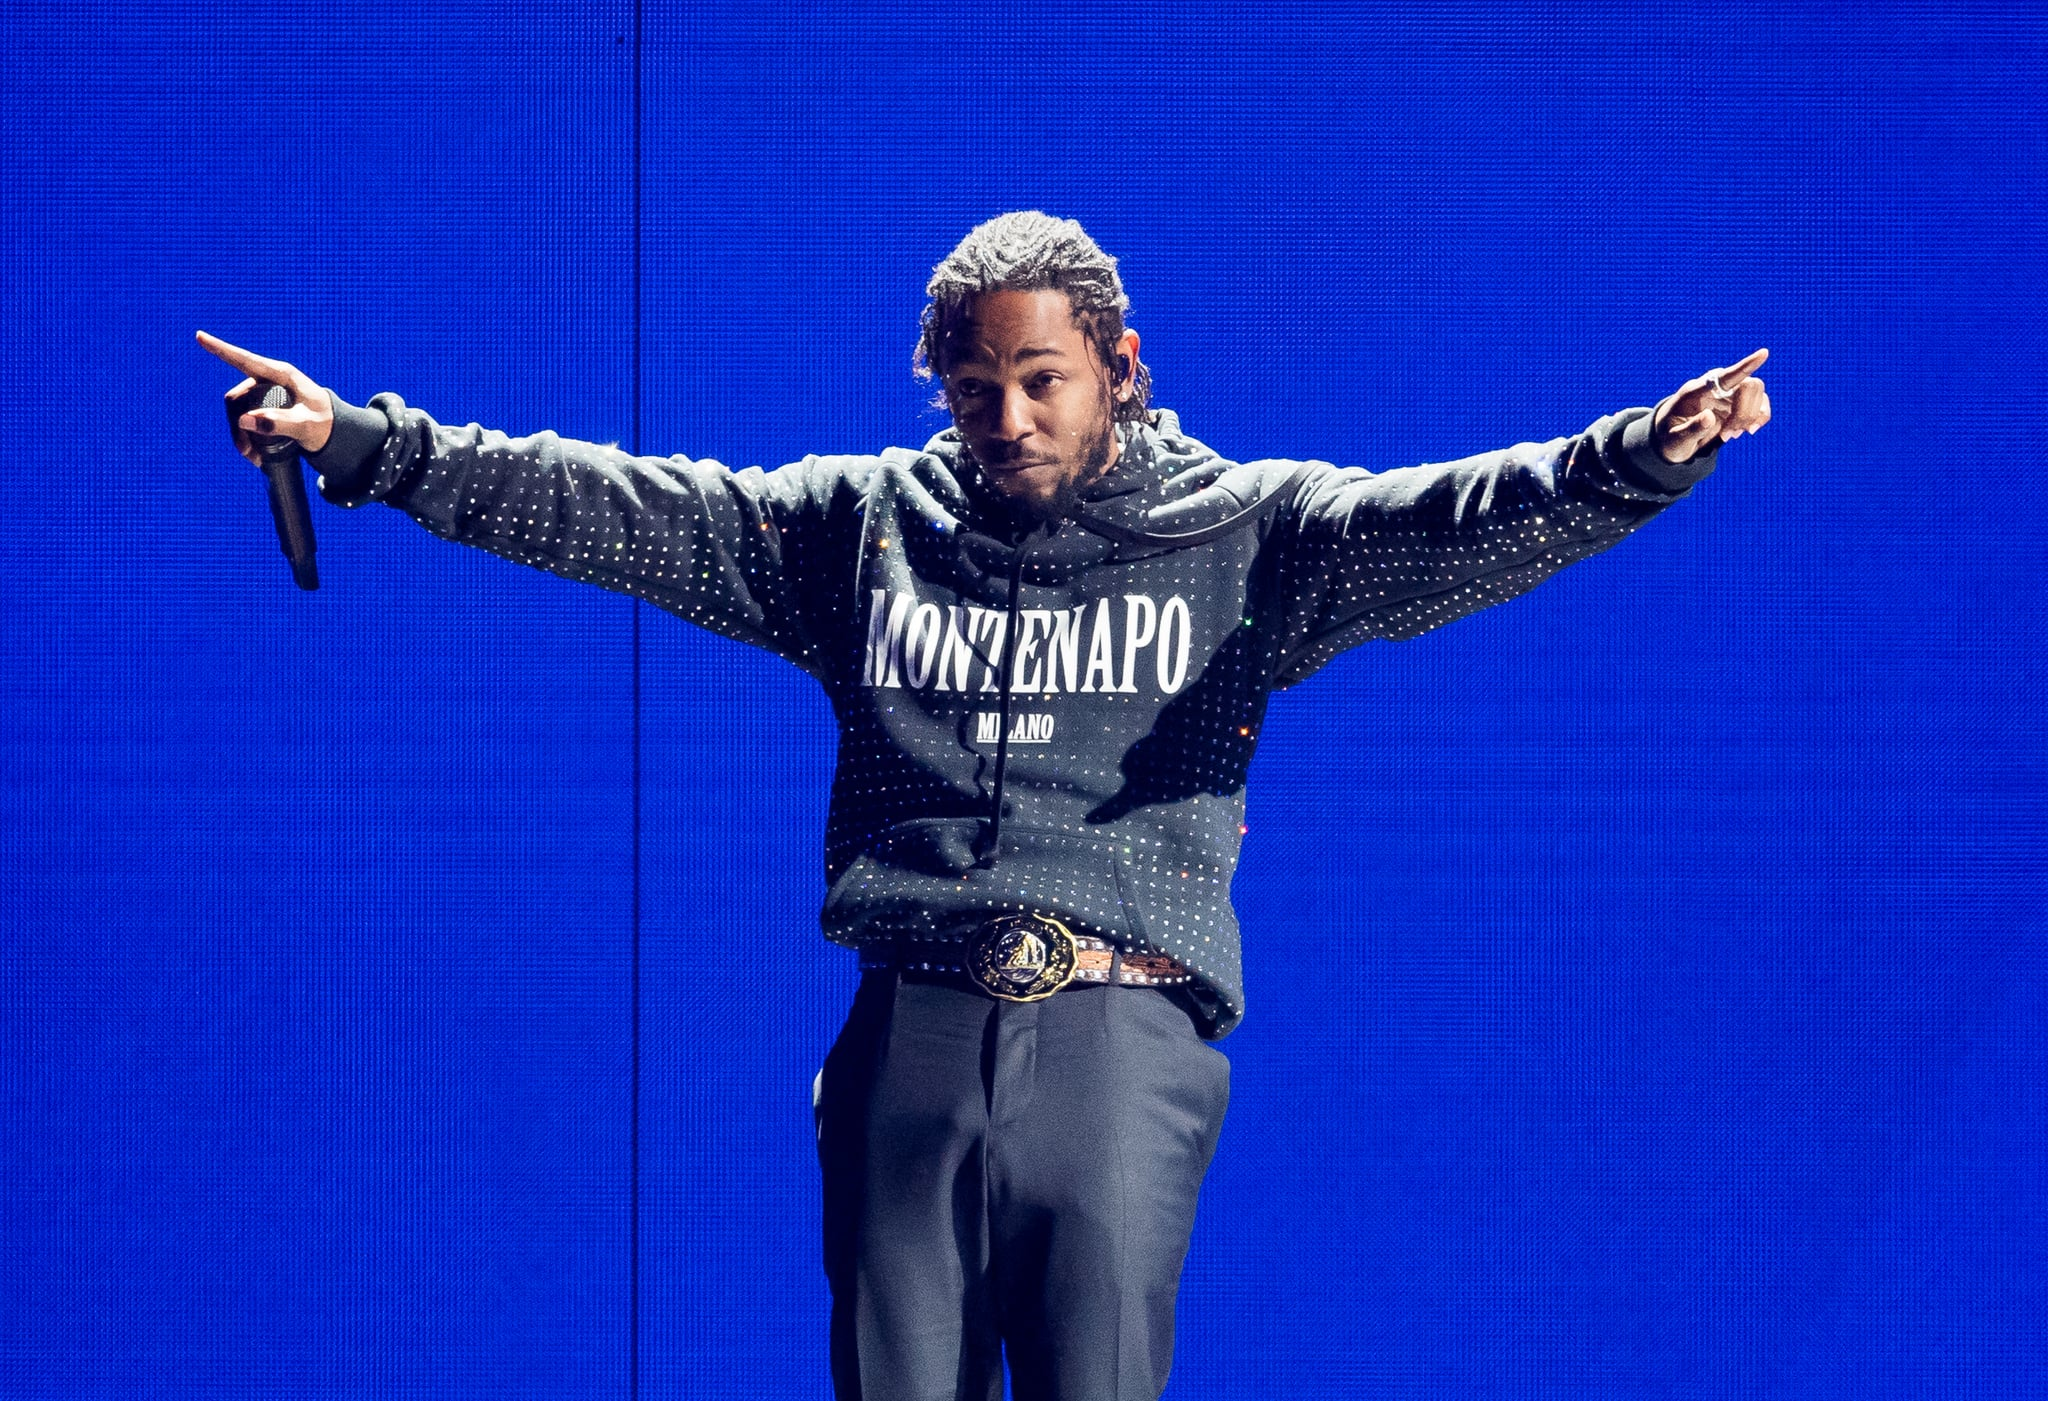 LONDON, ENGLAND - FEBRUARY 21:  *** EDITORIAL USE ONLY IN RELATION TO THE BRIT AWARDS 2018 *** Kendrick Lamar performs at The BRIT Awards 2018 held at The O2 Arena on February 21, 2018 in London, England.  (Photo by Samir Hussein/Samir Hussein/WireImage)